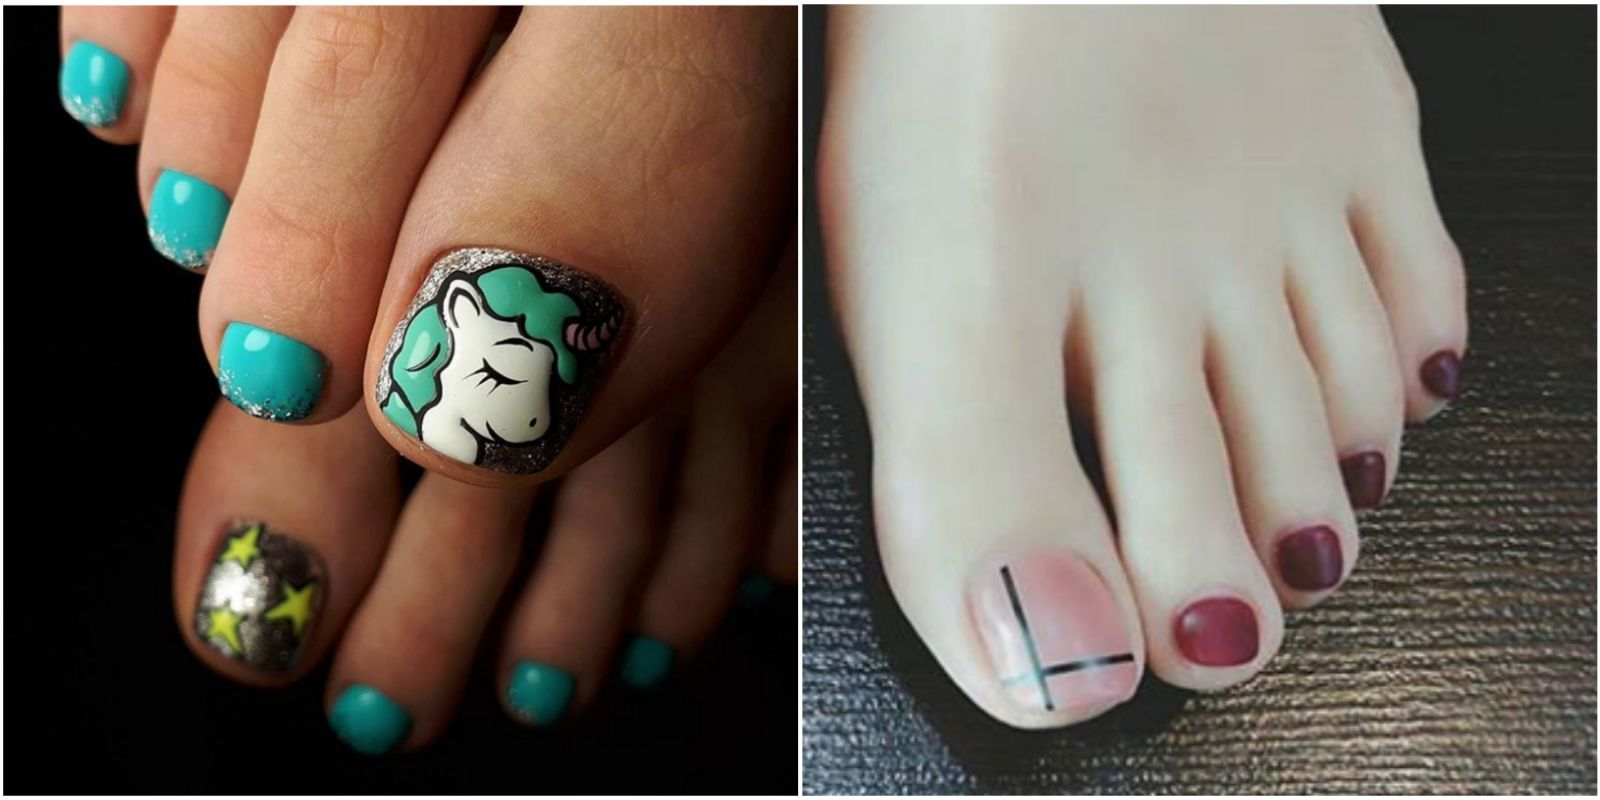 12 cute toe nail art designs 2018 best toenail polish ideas prinsesfo Images